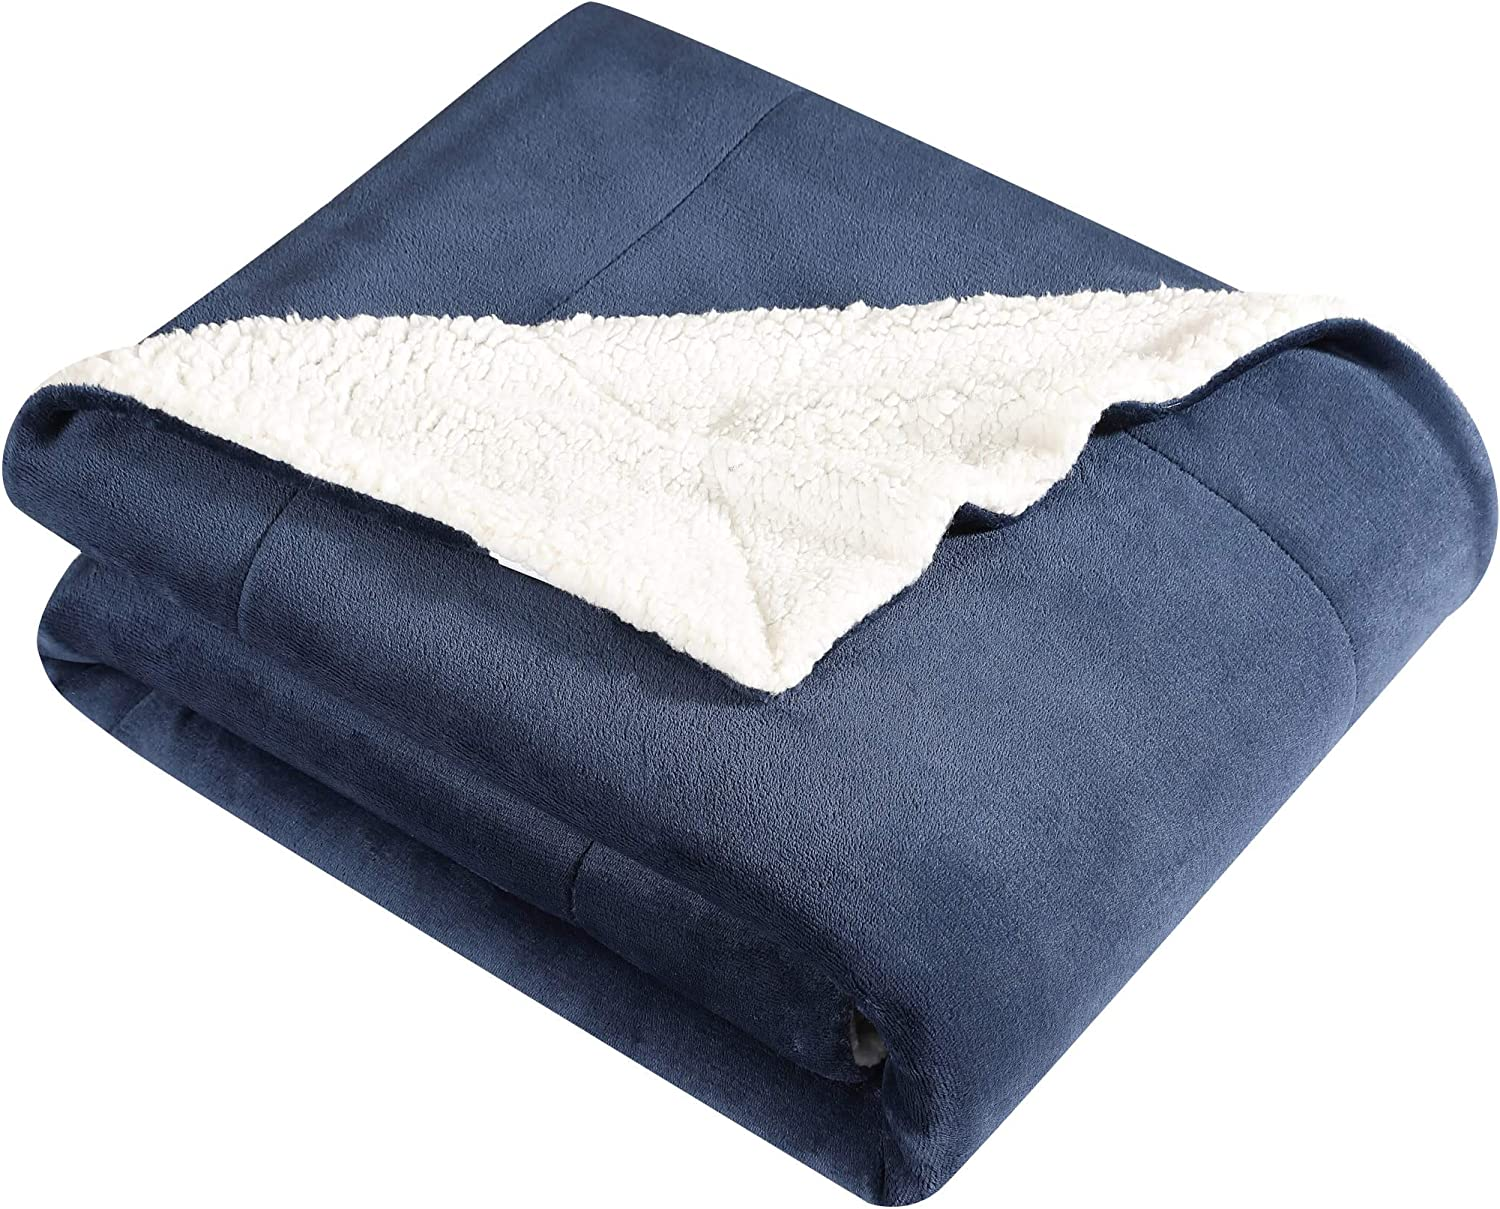 Eddie Bauer Ultra-Plush Collection Throw Blanket - Reversible Sherpa Fleece Cover, Soft & Cozy, Perfect for Bed or Couch, Full/Queen, Blue